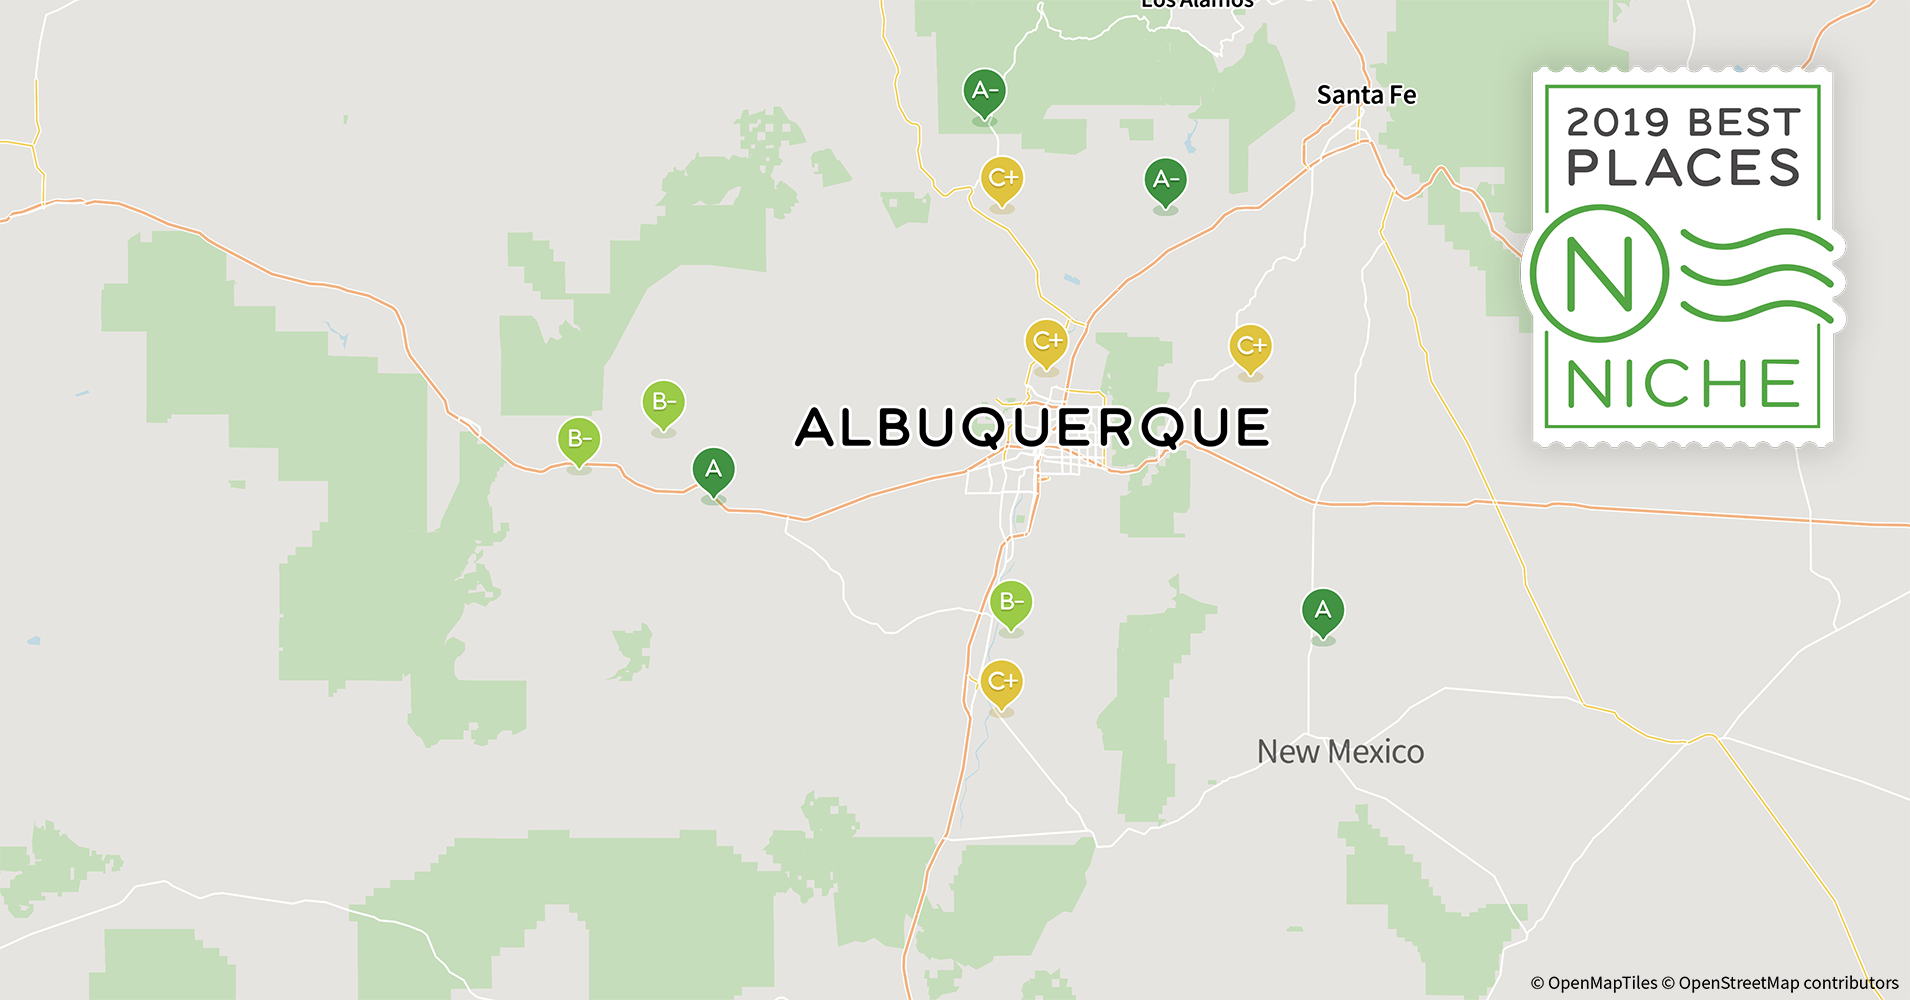 2019 Best Places To Live In The Albuquerque Area Niche